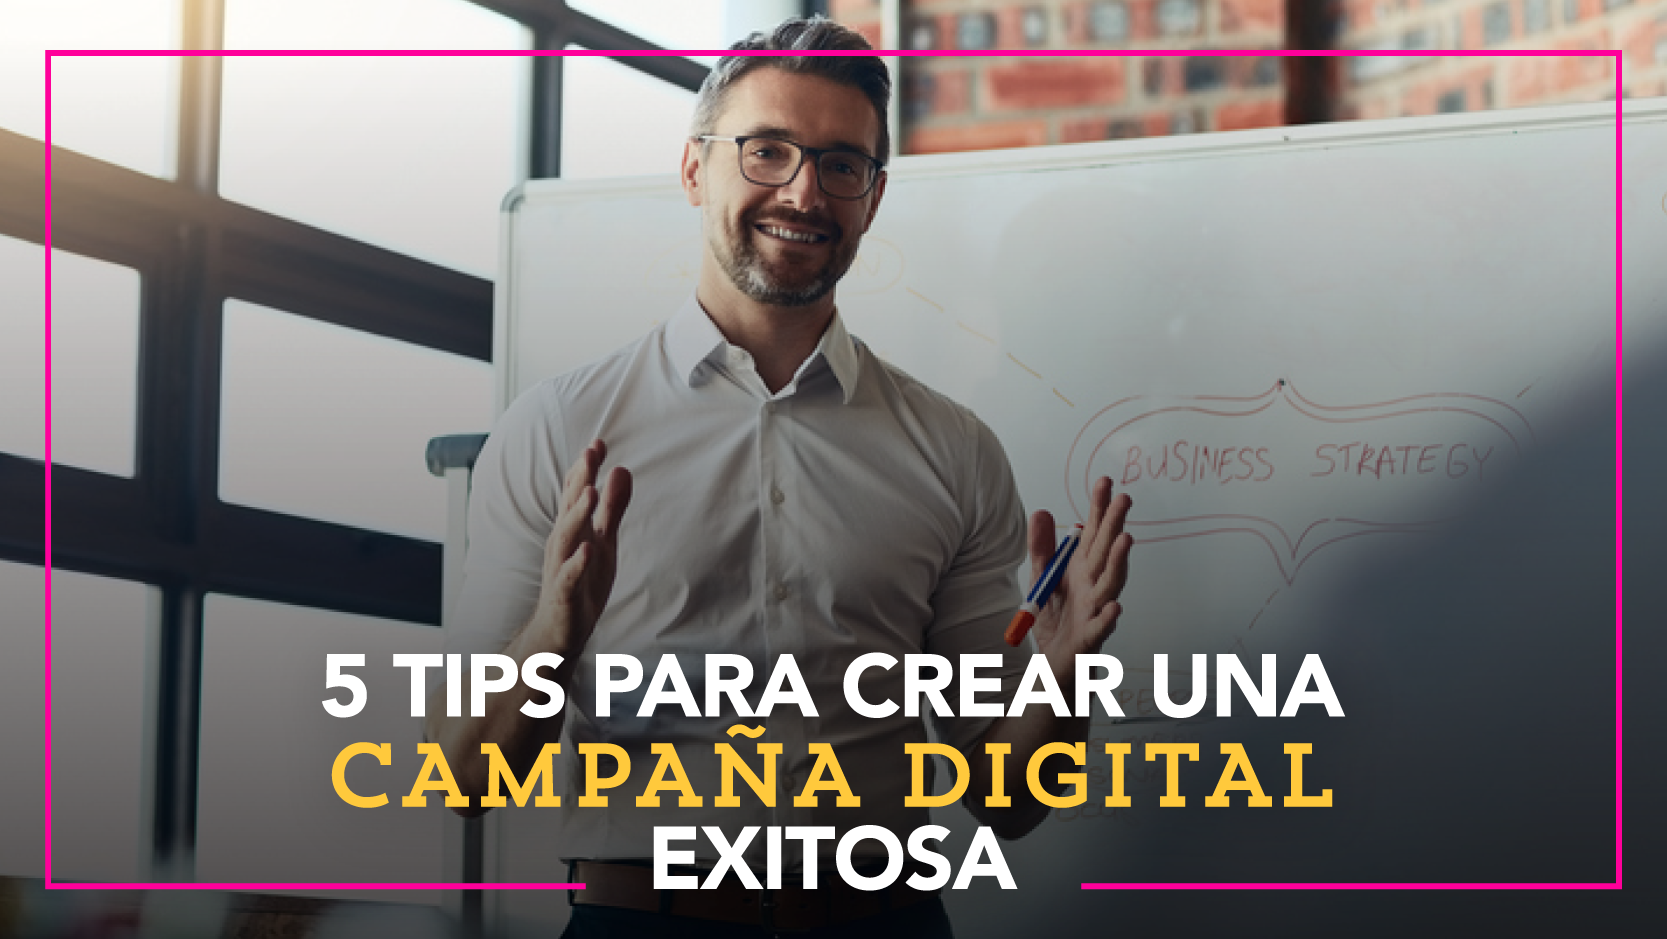 Tips para crear una campaña digital